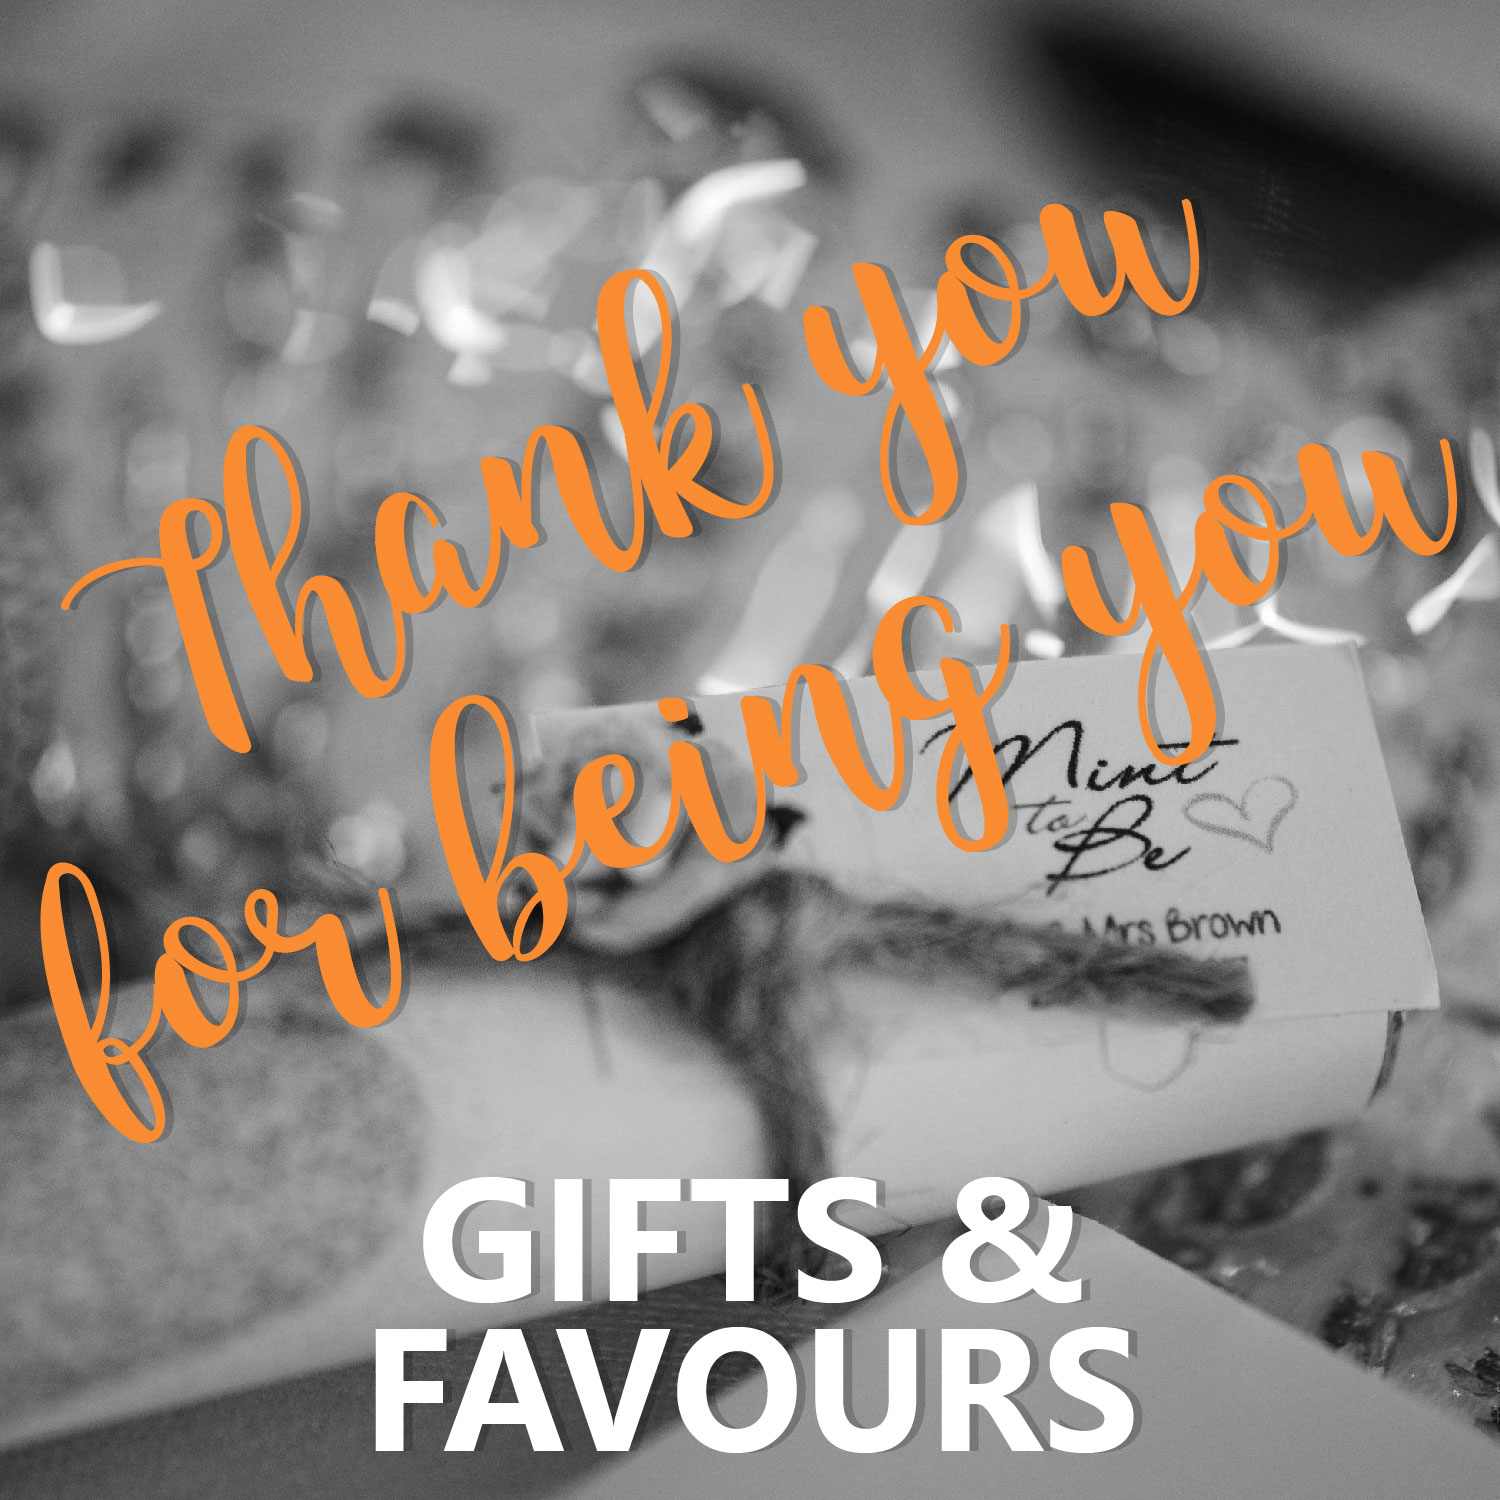 12 GIFTS FAVOURS - Gifts & Favours